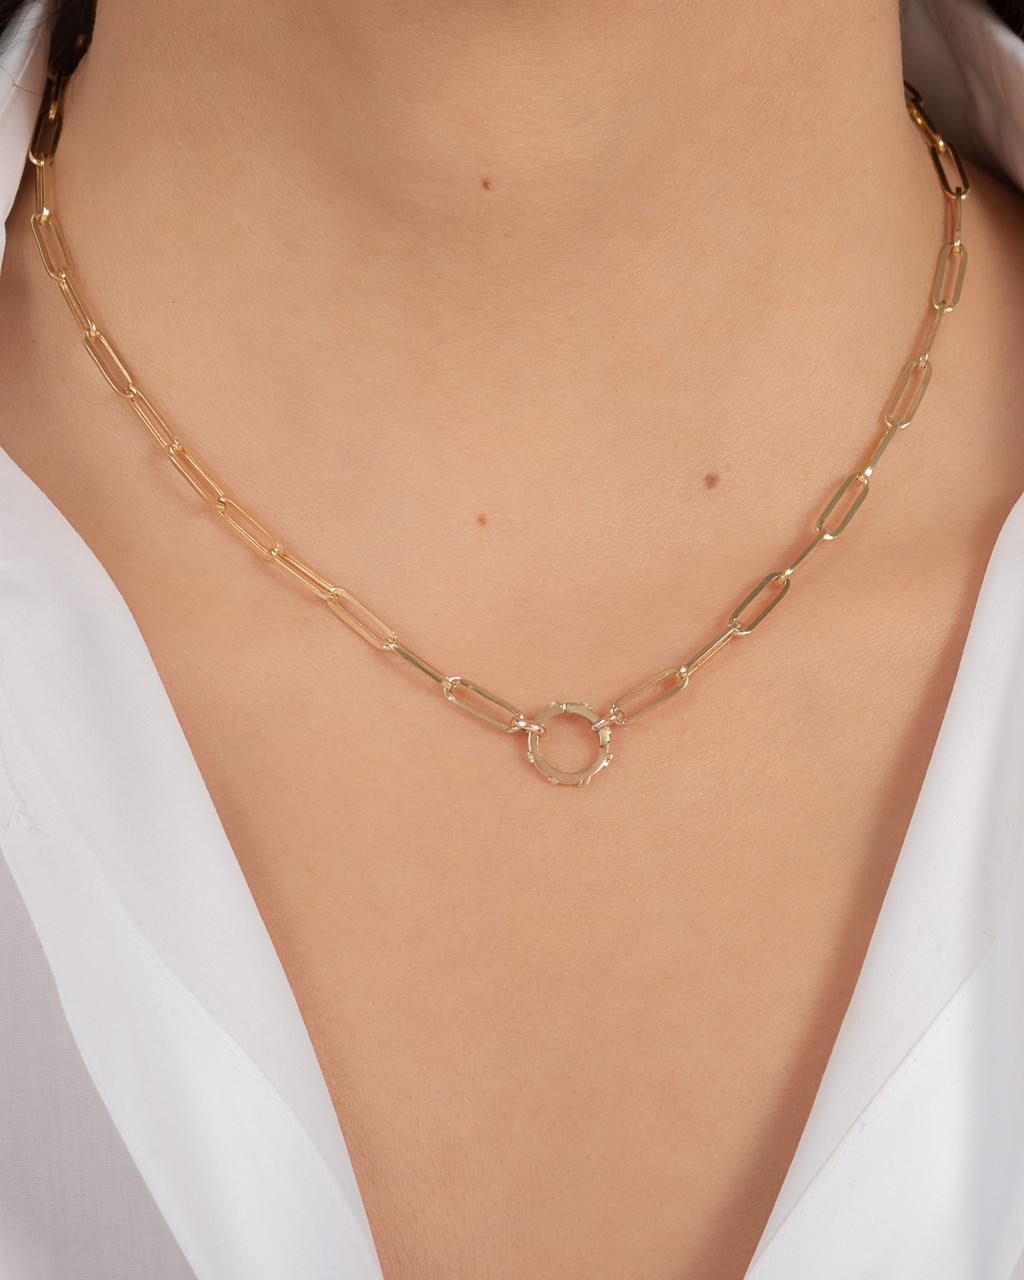 14k Gold Large Paper Clip Chain with Diamond Enhancer Necklace